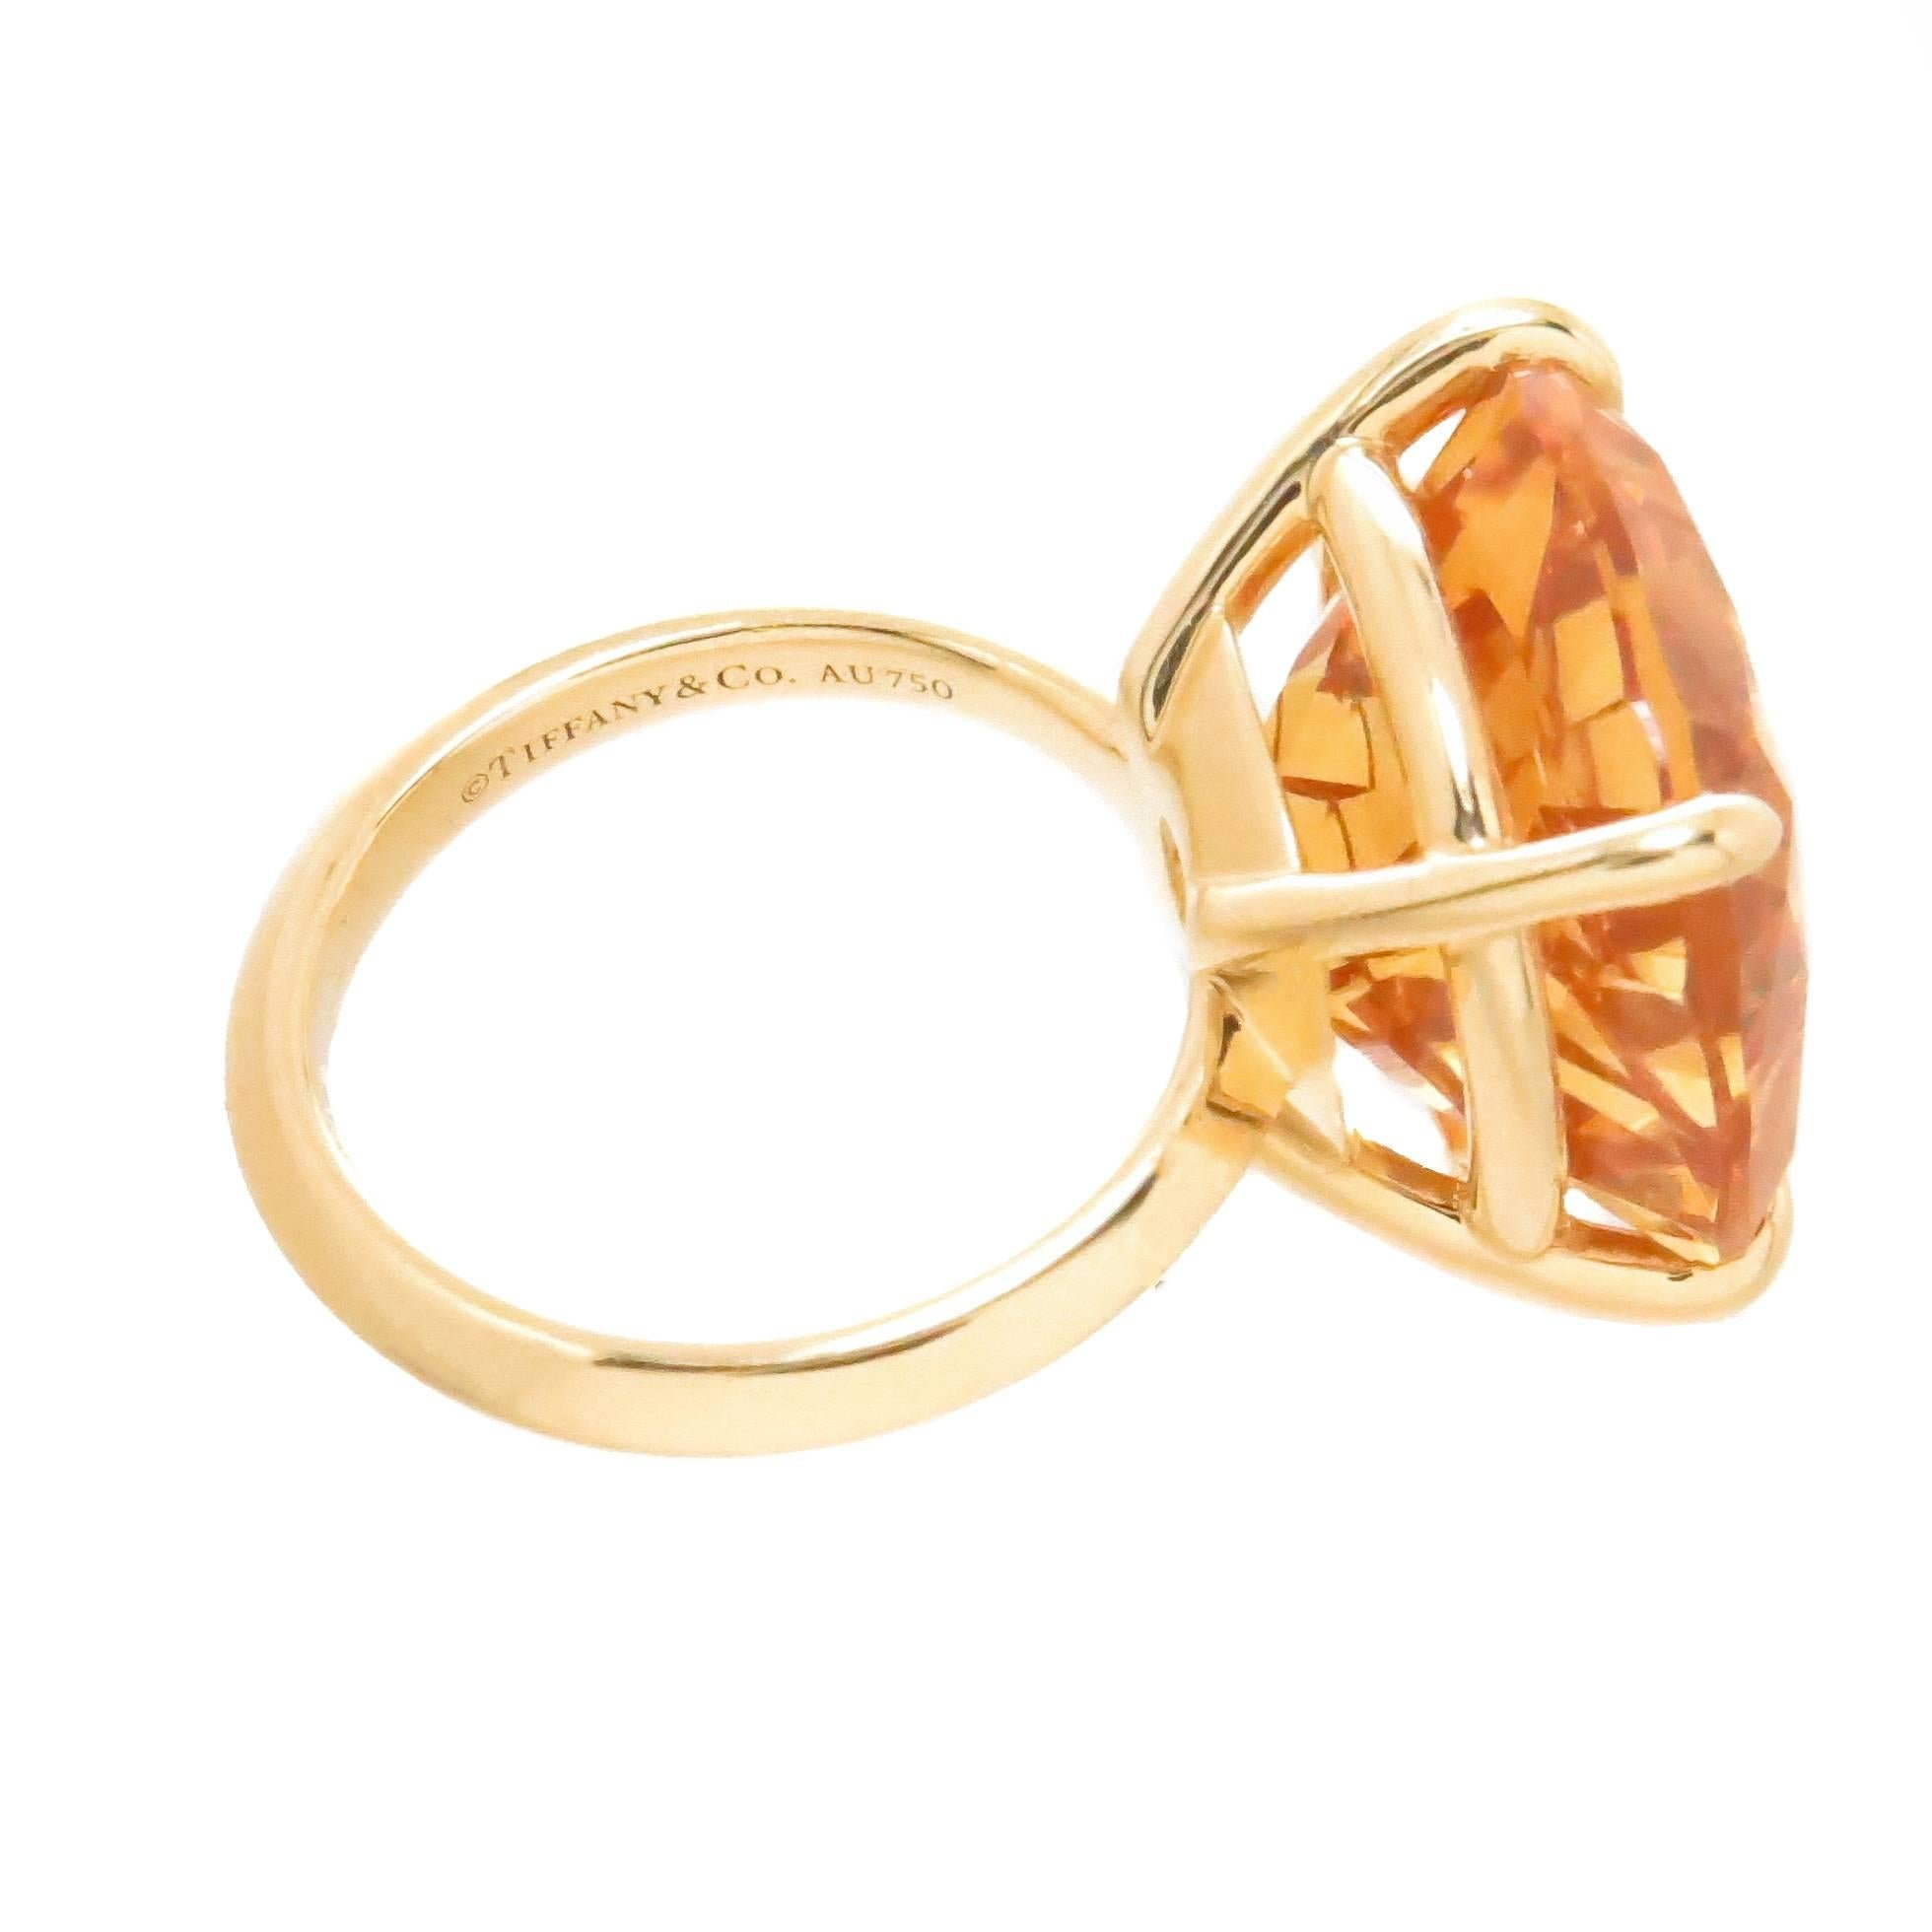 4f4c89307 Tiffany and Co. Gold and Large Citrine Sparklers Collection Ring at 1stdibs